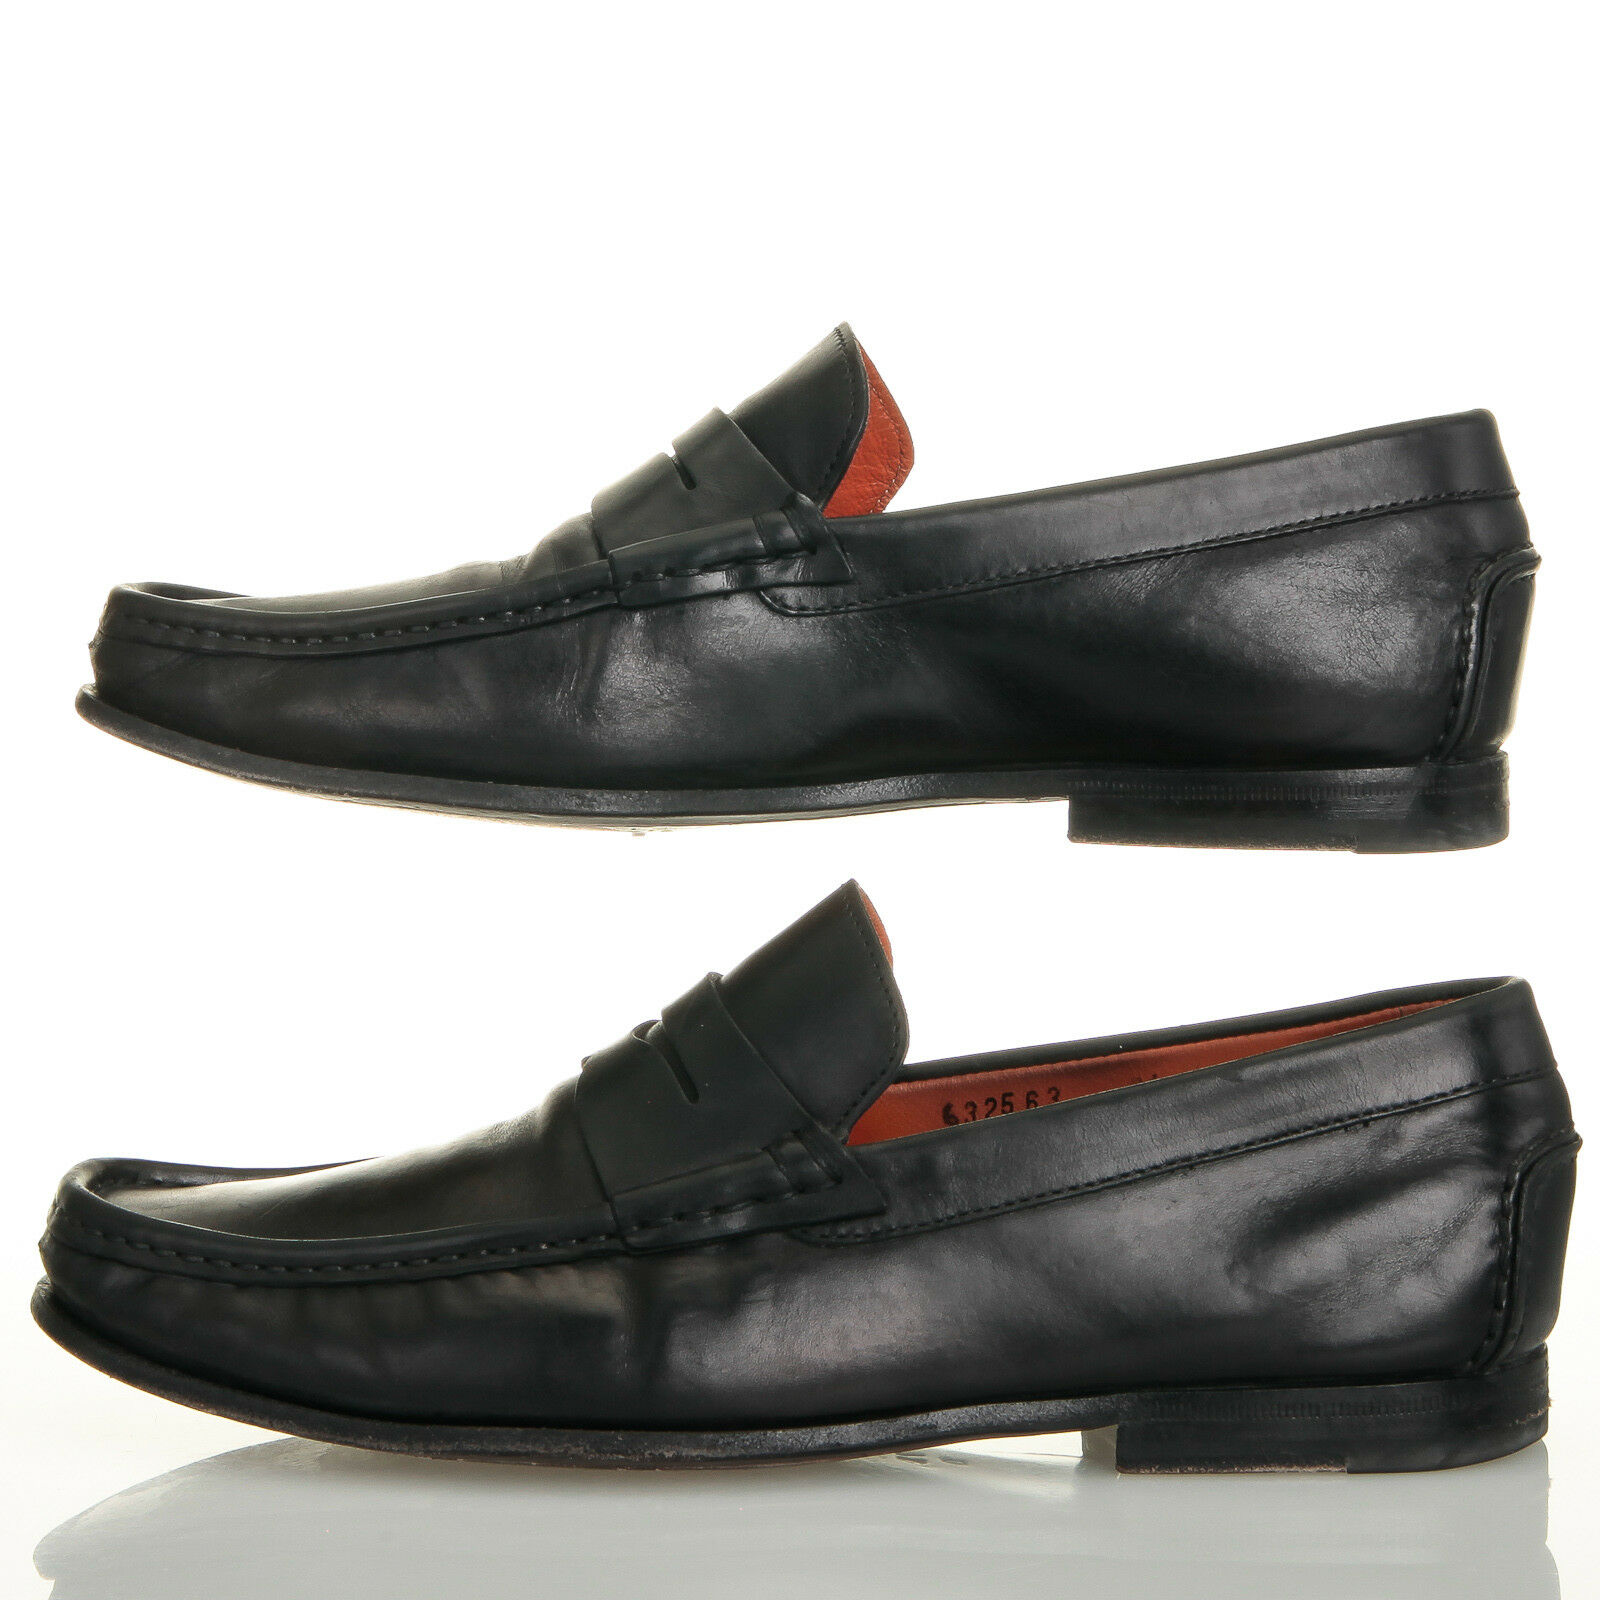 f92ccaacdab ... Santoni Fergus Black Leather Penny Loafers - Mens Mens Mens 7.5 D  1b05b4 ...